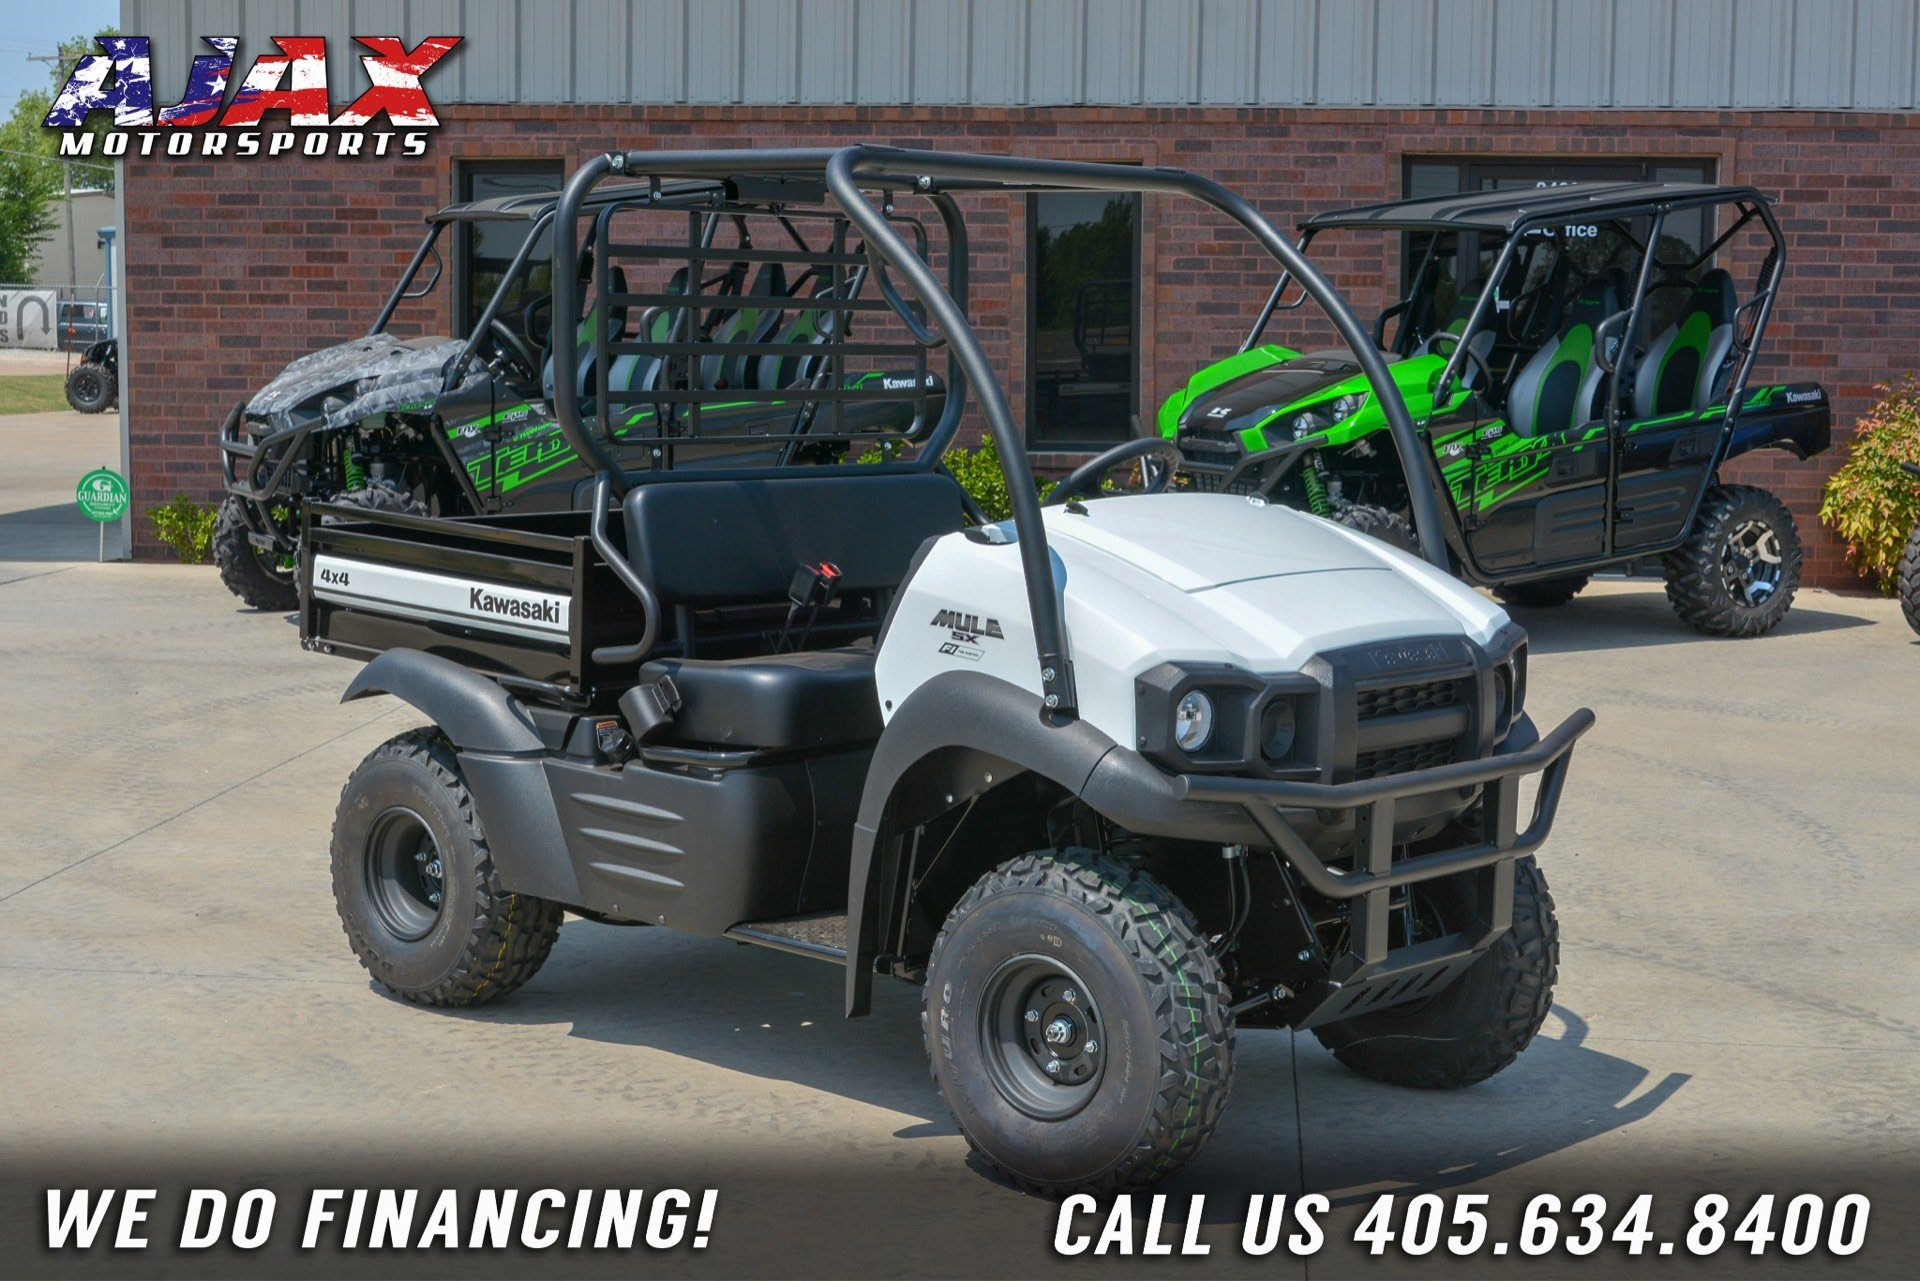 2020 Kawasaki Mule SX 4x4 SE FI in Oklahoma City, Oklahoma - Photo 5